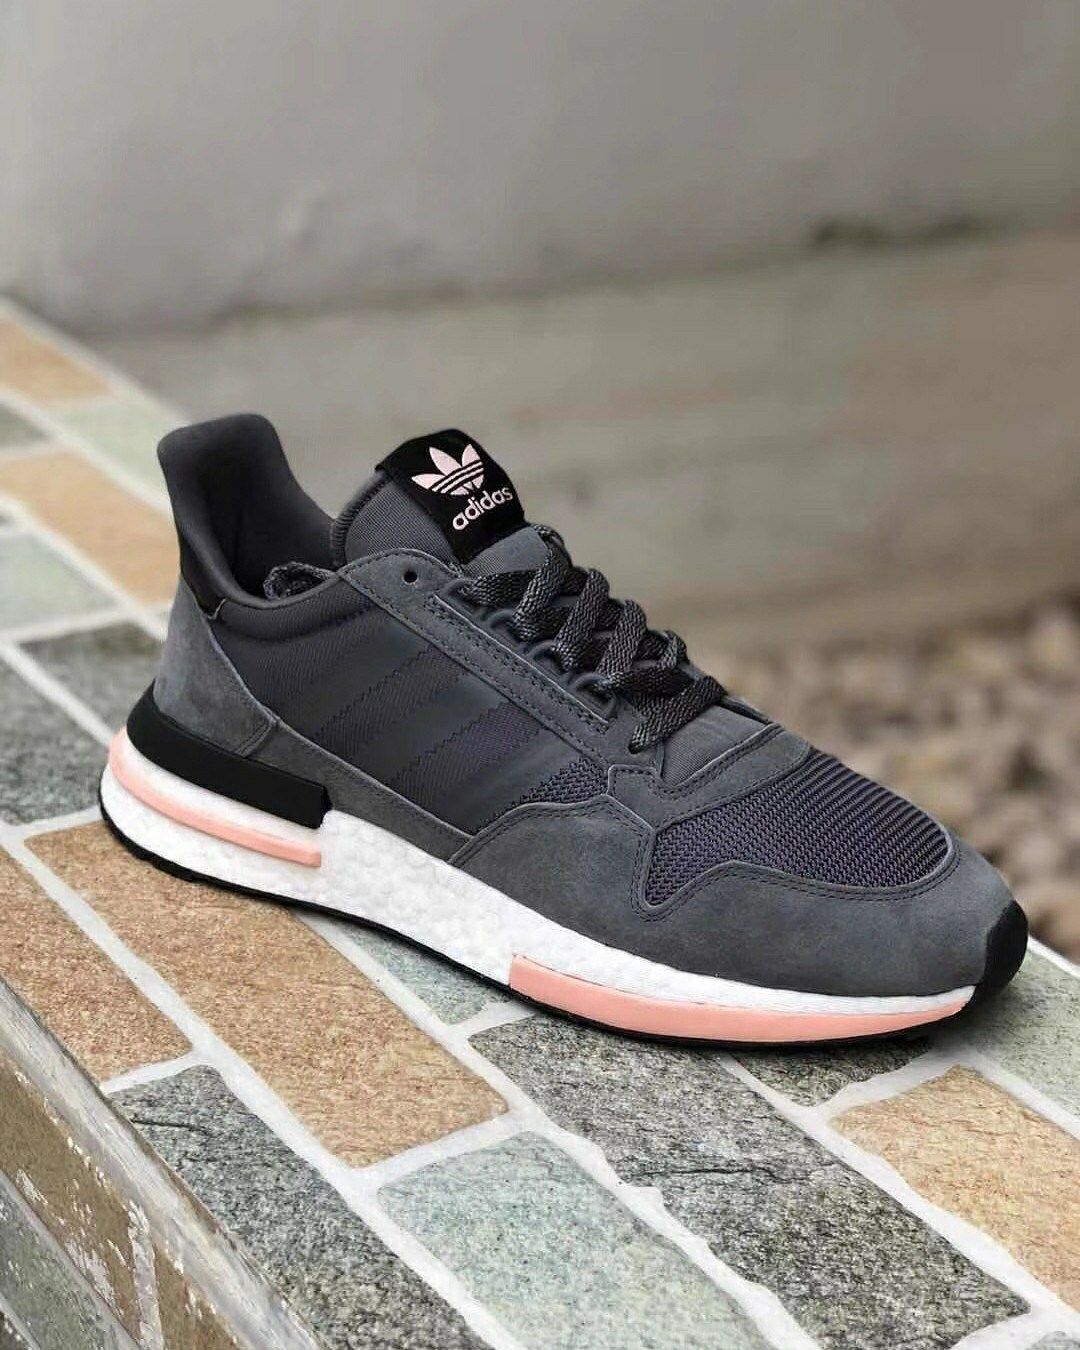 8176b5b143c7df adidas ZX 500 Boost  Three Colorway Preview - EU Kicks  Sneaker Magazine